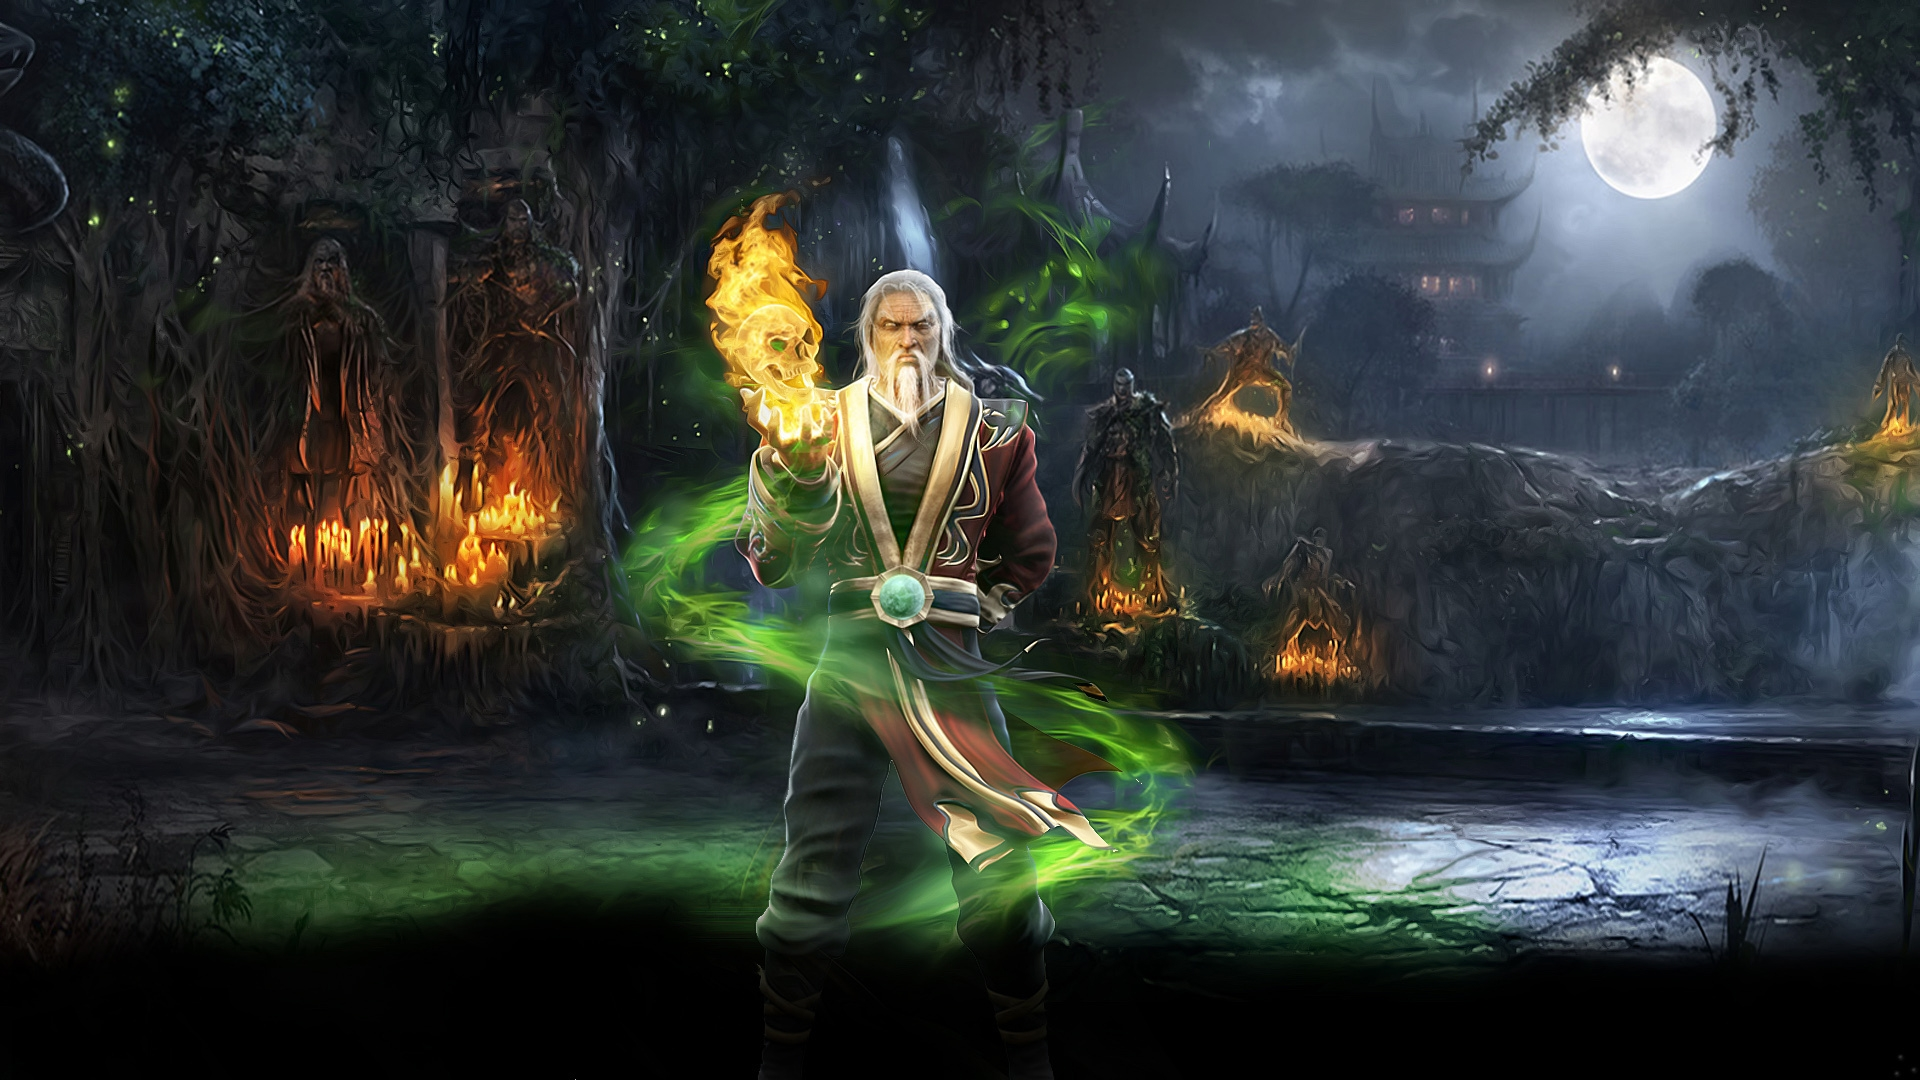 1920x1080 wizard wallpapers - photo #28